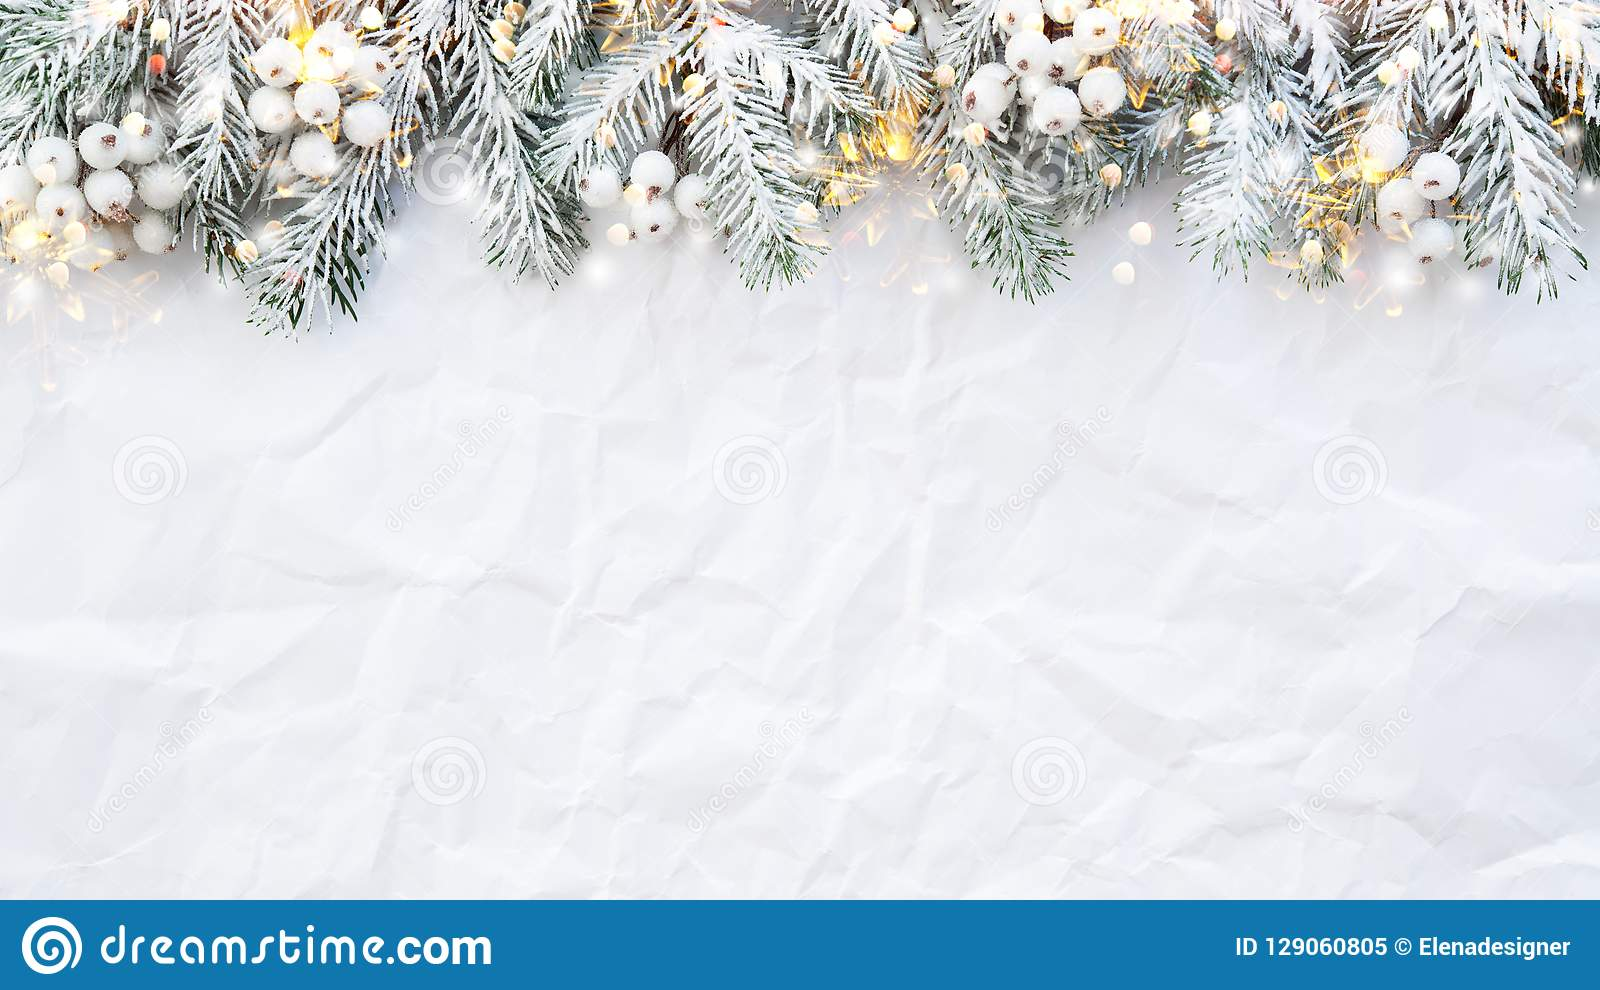 Holiday Christmas Background.Christmas And New Year Holiday Background Xmas Greeting